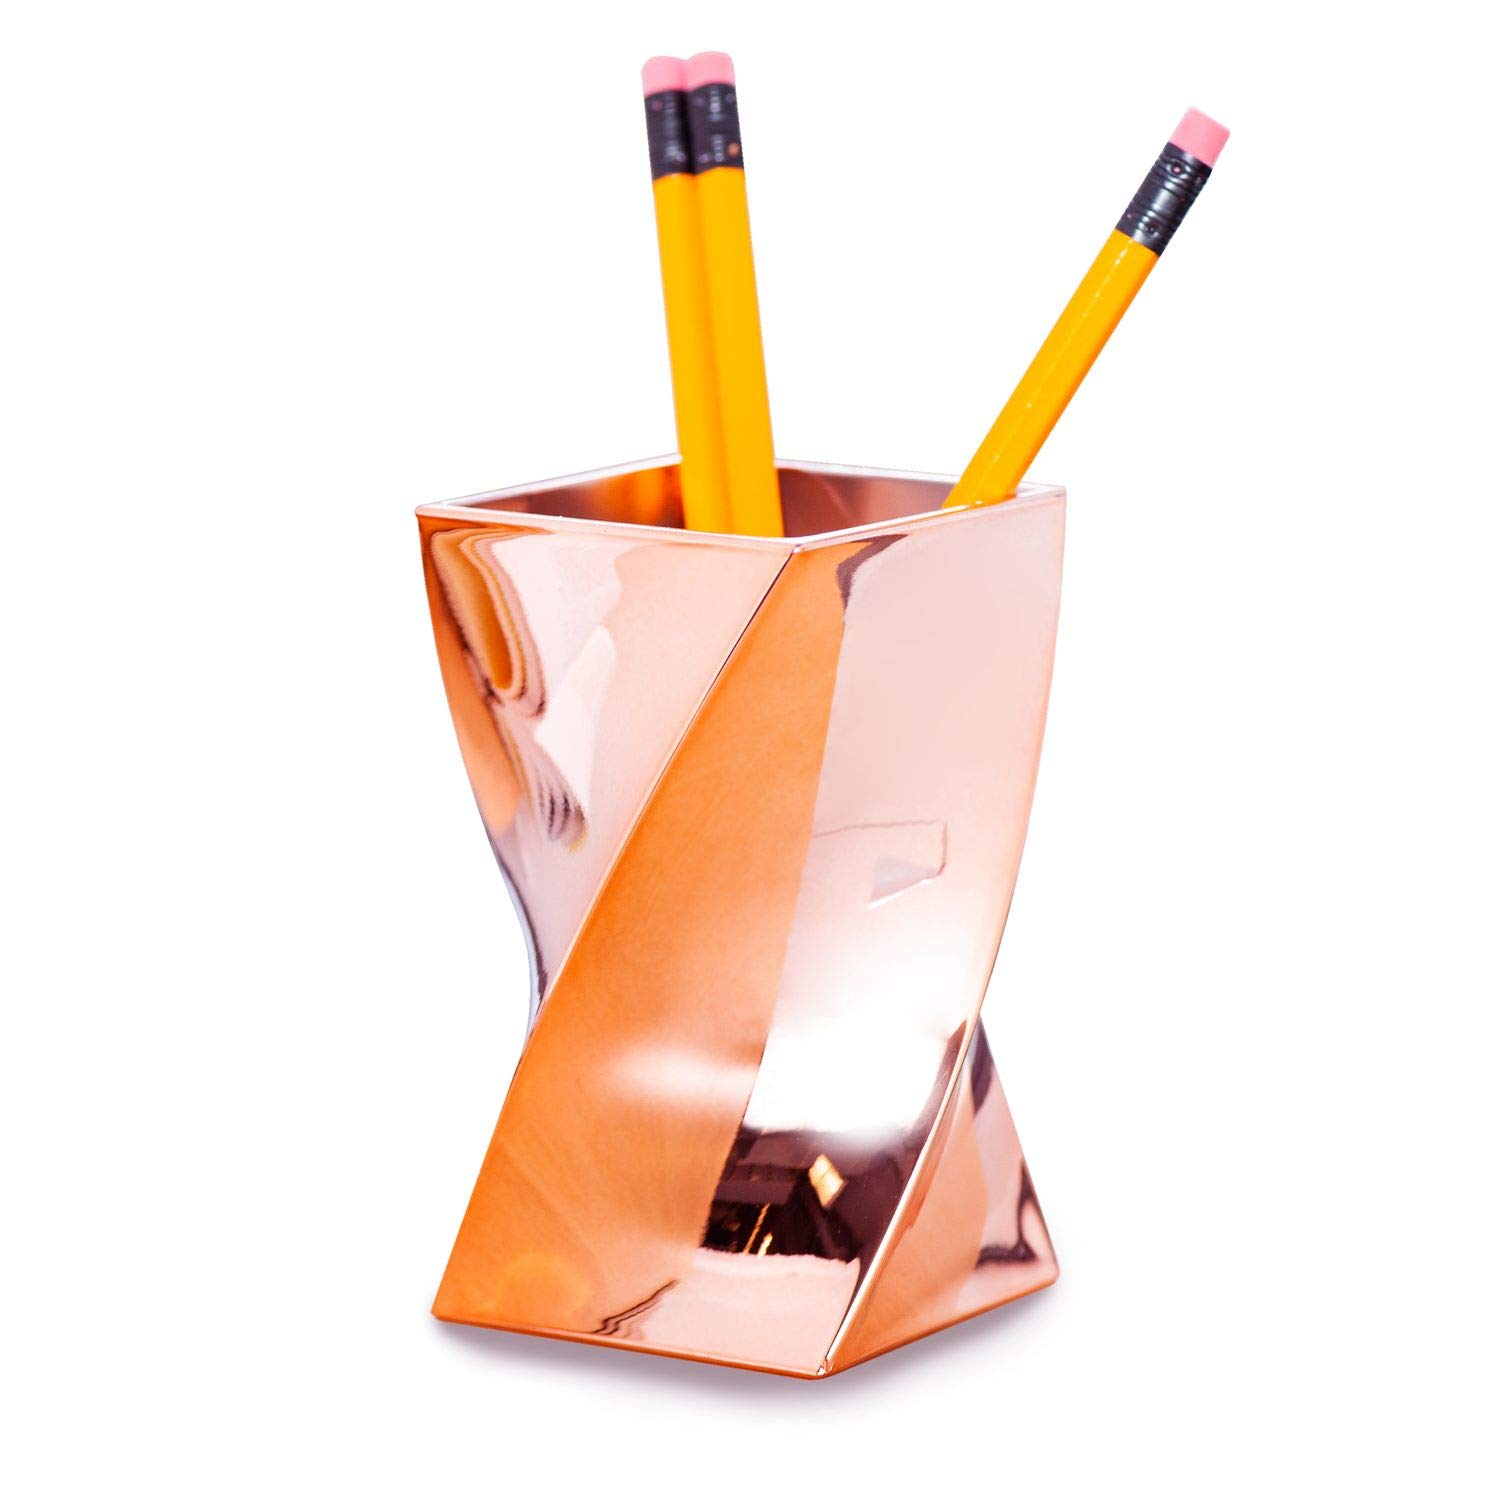 Zodaca [Wave Design] Stylish Rose Gold Pen Holder Twist, Chrome Color Pencil Brush Cup Desktop Stationery Makeup Organizer, Bright up your Office, Home, Schools Supplies, Great Gift Idea